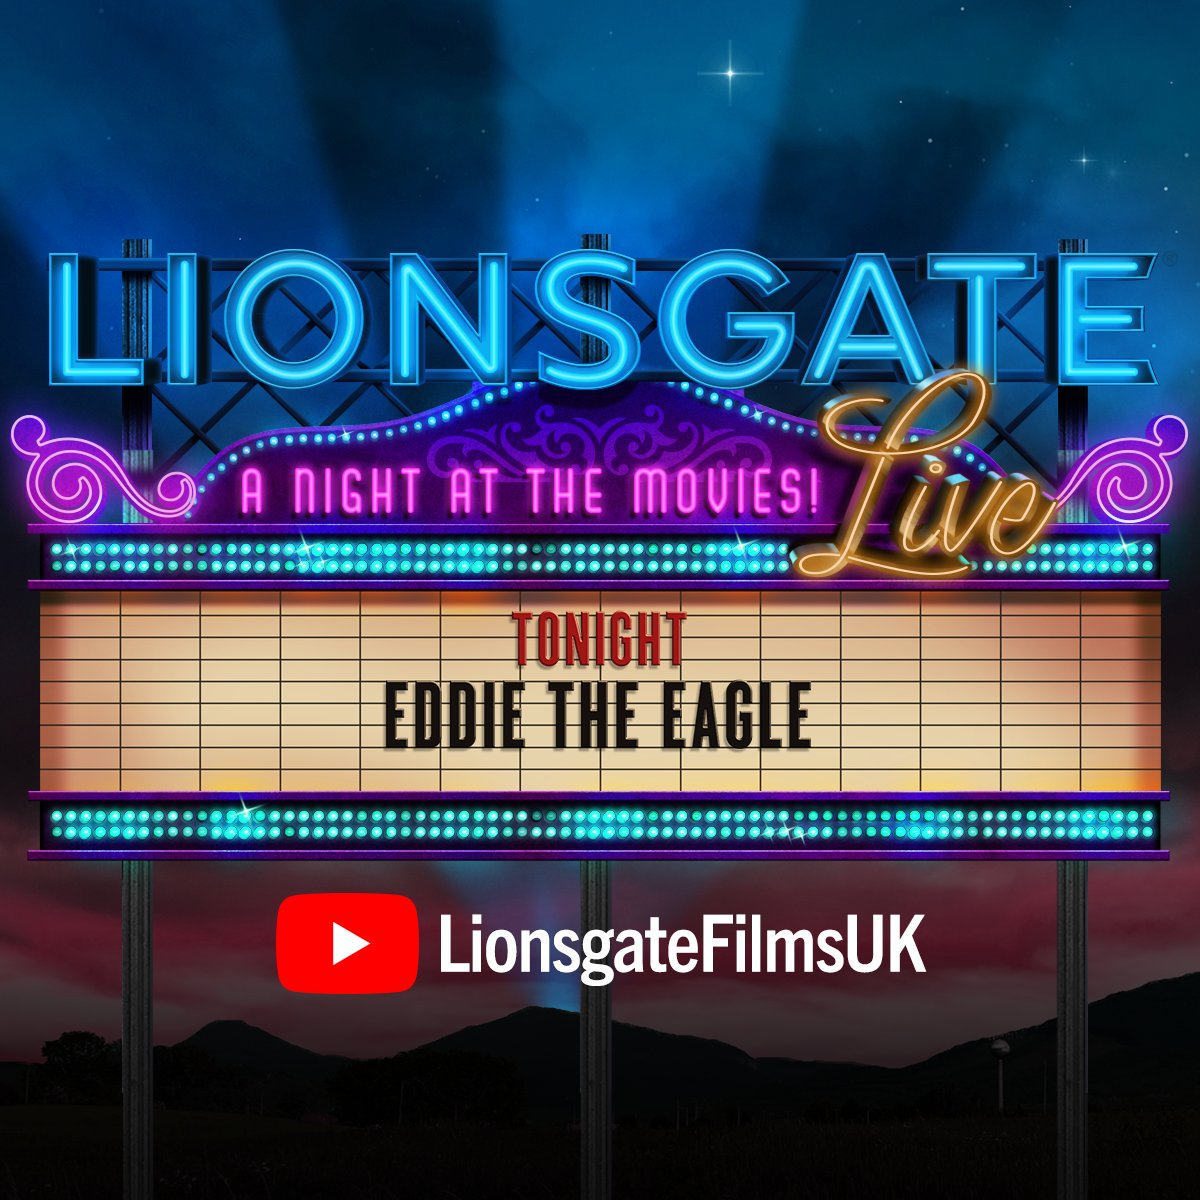 🍿Time to grab the popcorn! Just 10 minutes the next #LionsgateLive starts. This week it's the classic #EddieTheEagle streamed for free at 6pm  > https://t.co/0Crmw4Y9Aw https://t.co/3y7NRZogyb